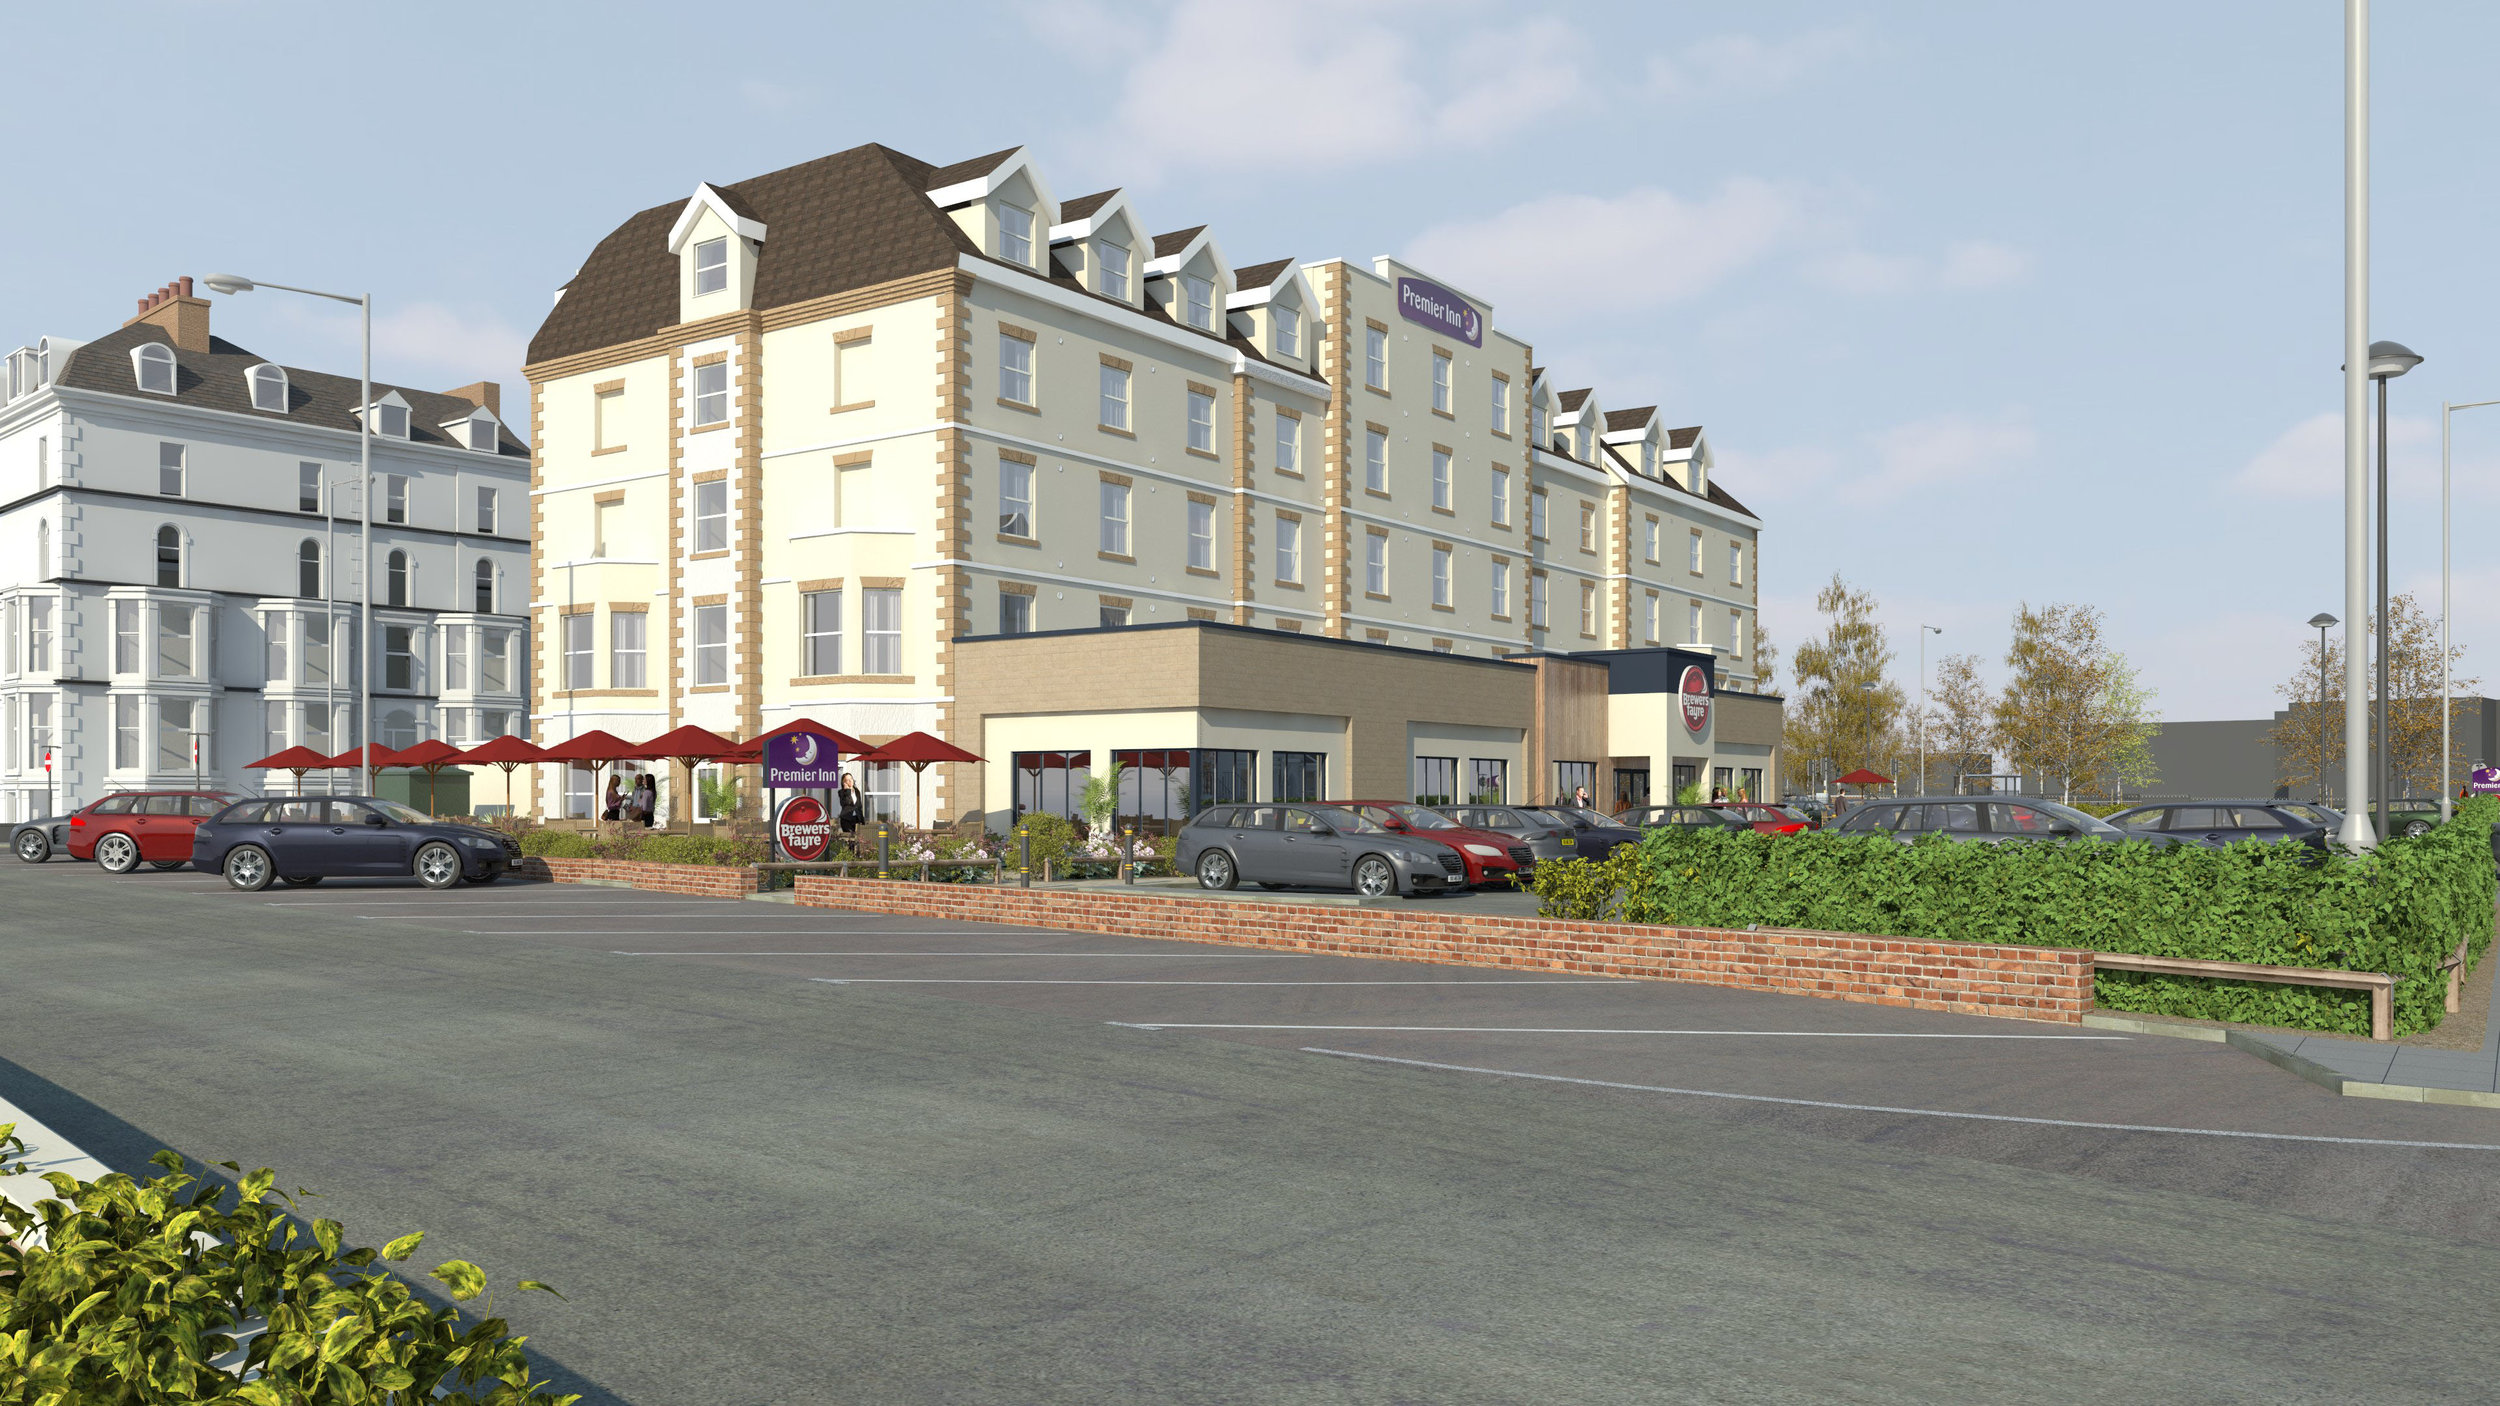 Arch-e-tech_Design_Ltd-Premier-Inn_Bridlington-03.jpg